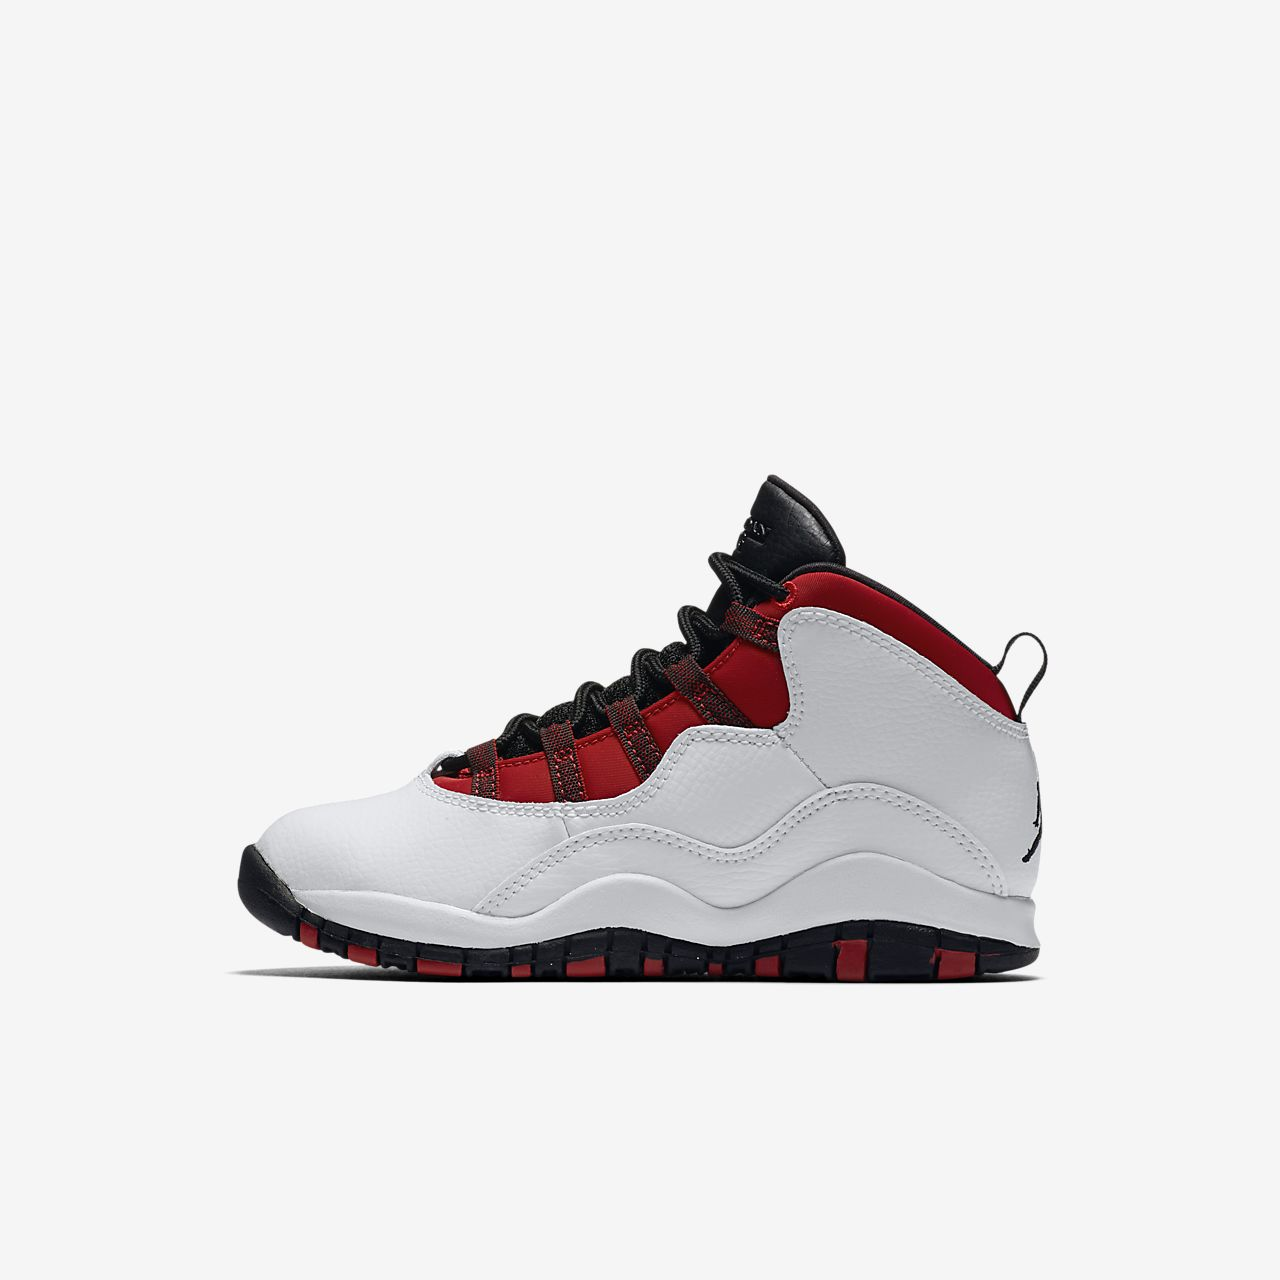 Air Jordan Retro 10 (10.5c-3y) Little Kids' Shoe